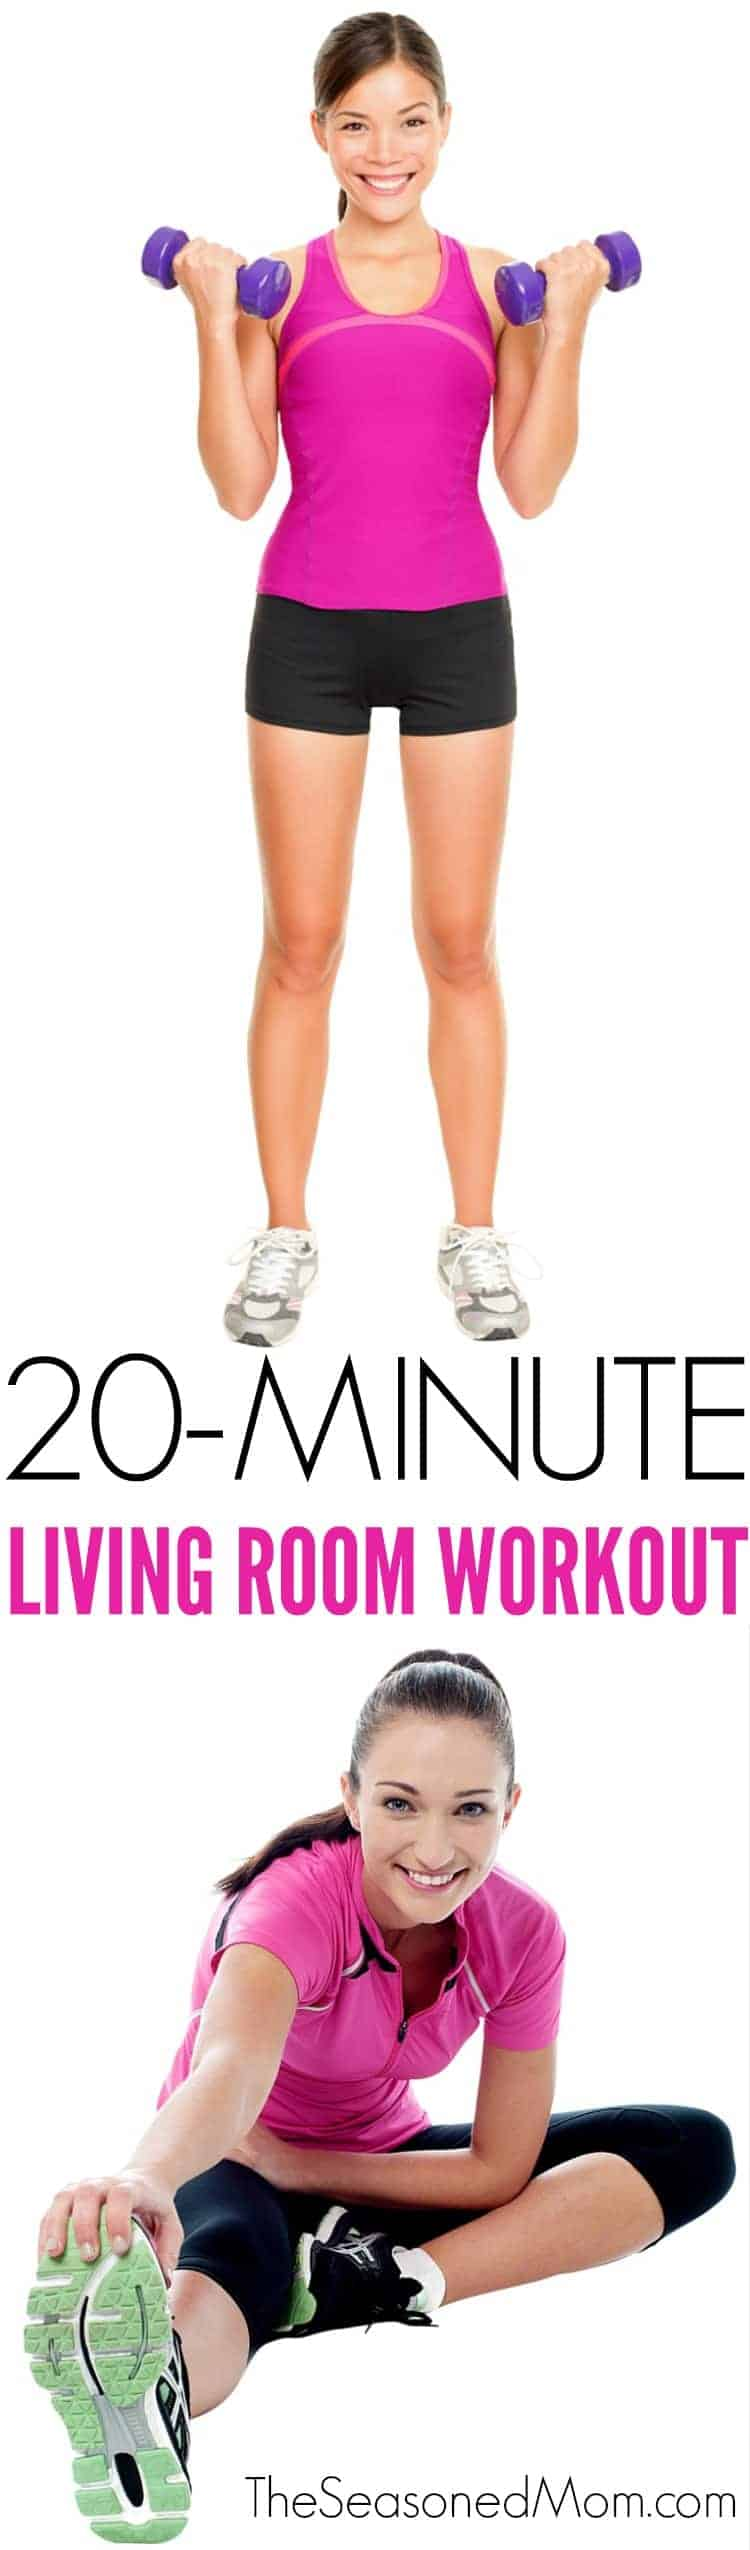 20 minute living room workout the seasoned mom for Living room exercises